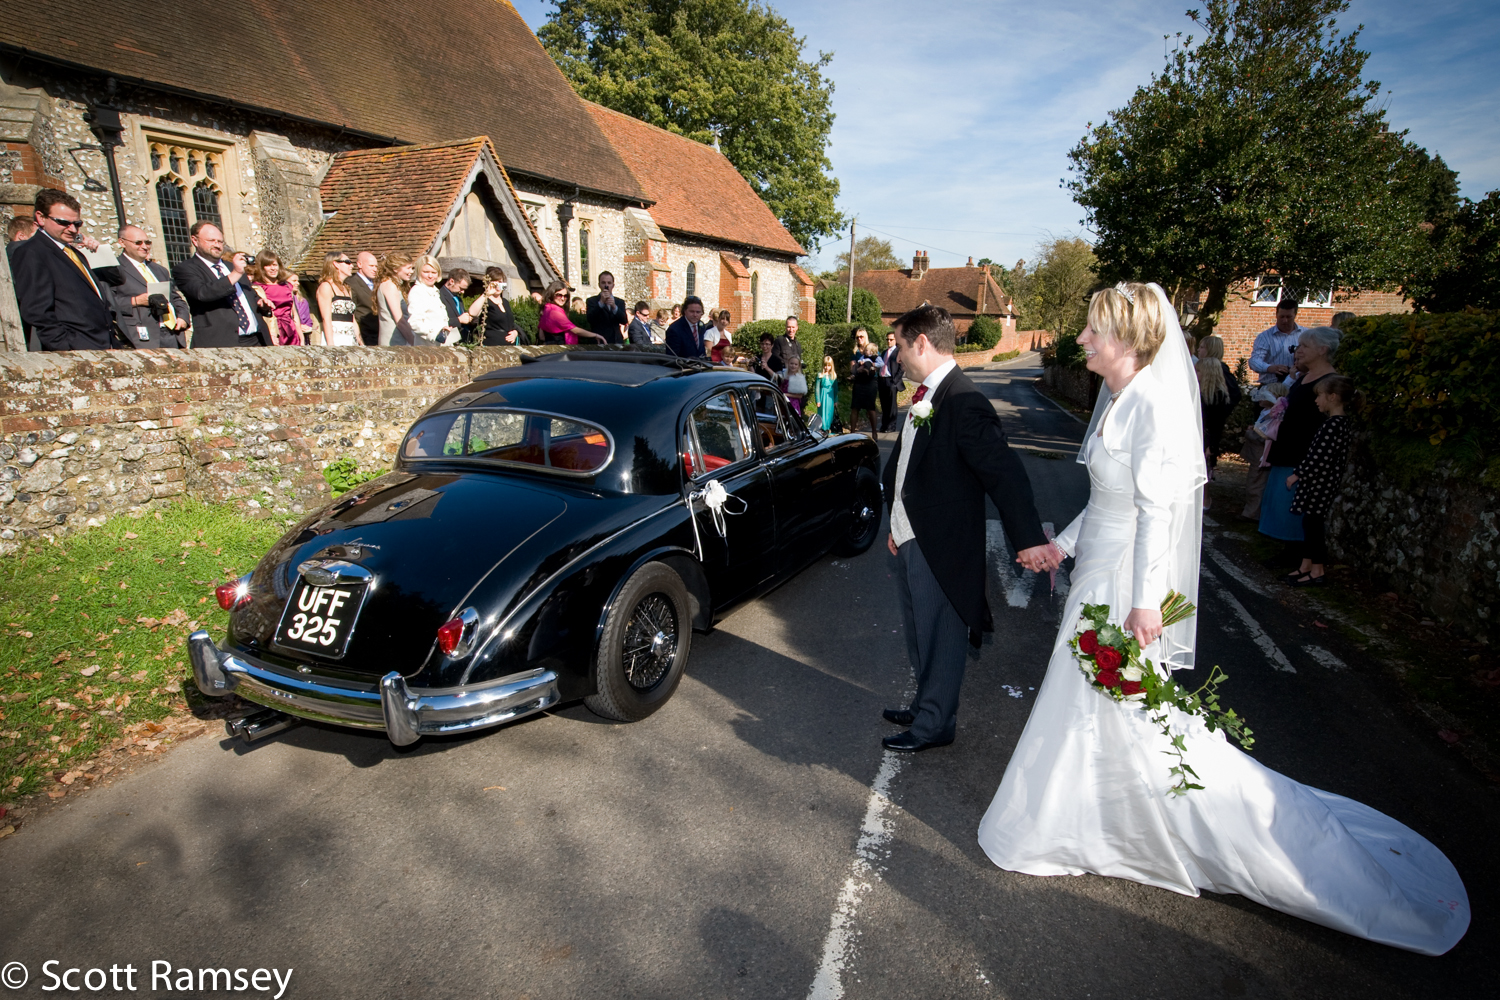 The groom leads his bride to a classic car as they leave after getting married atSt Thomas Church in East Clandon, Surrey.